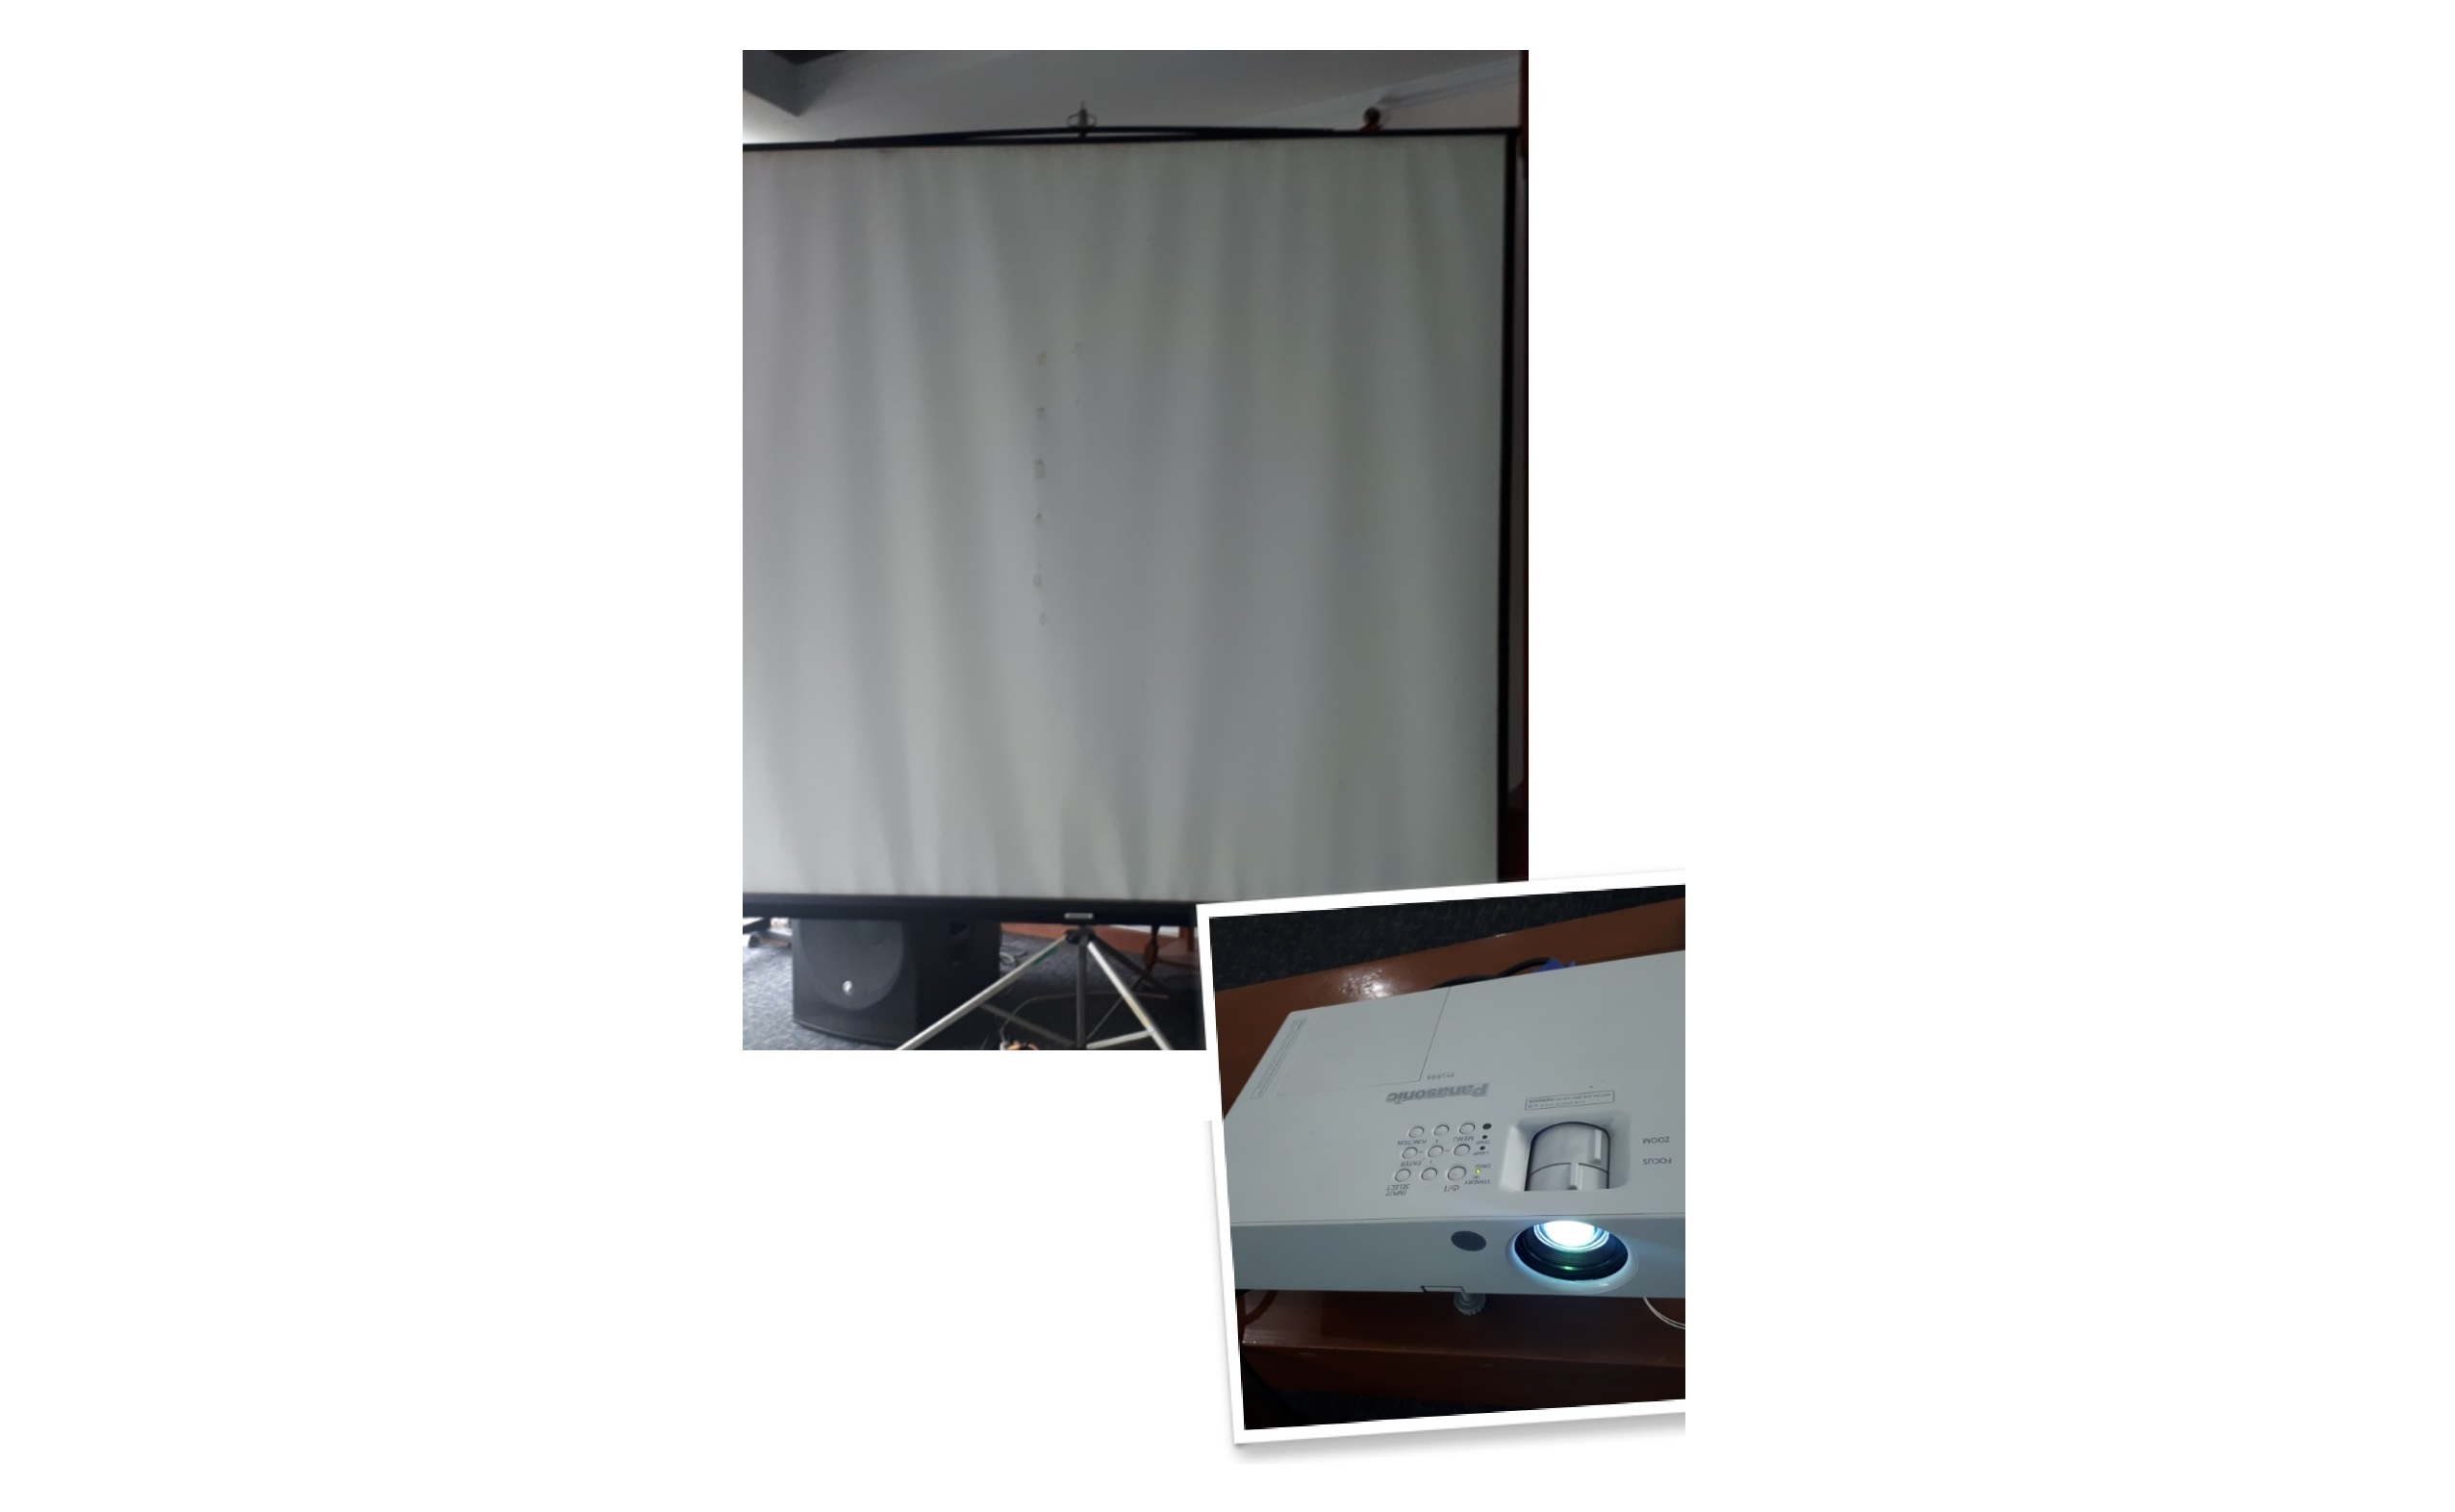 LCD Projector and screen